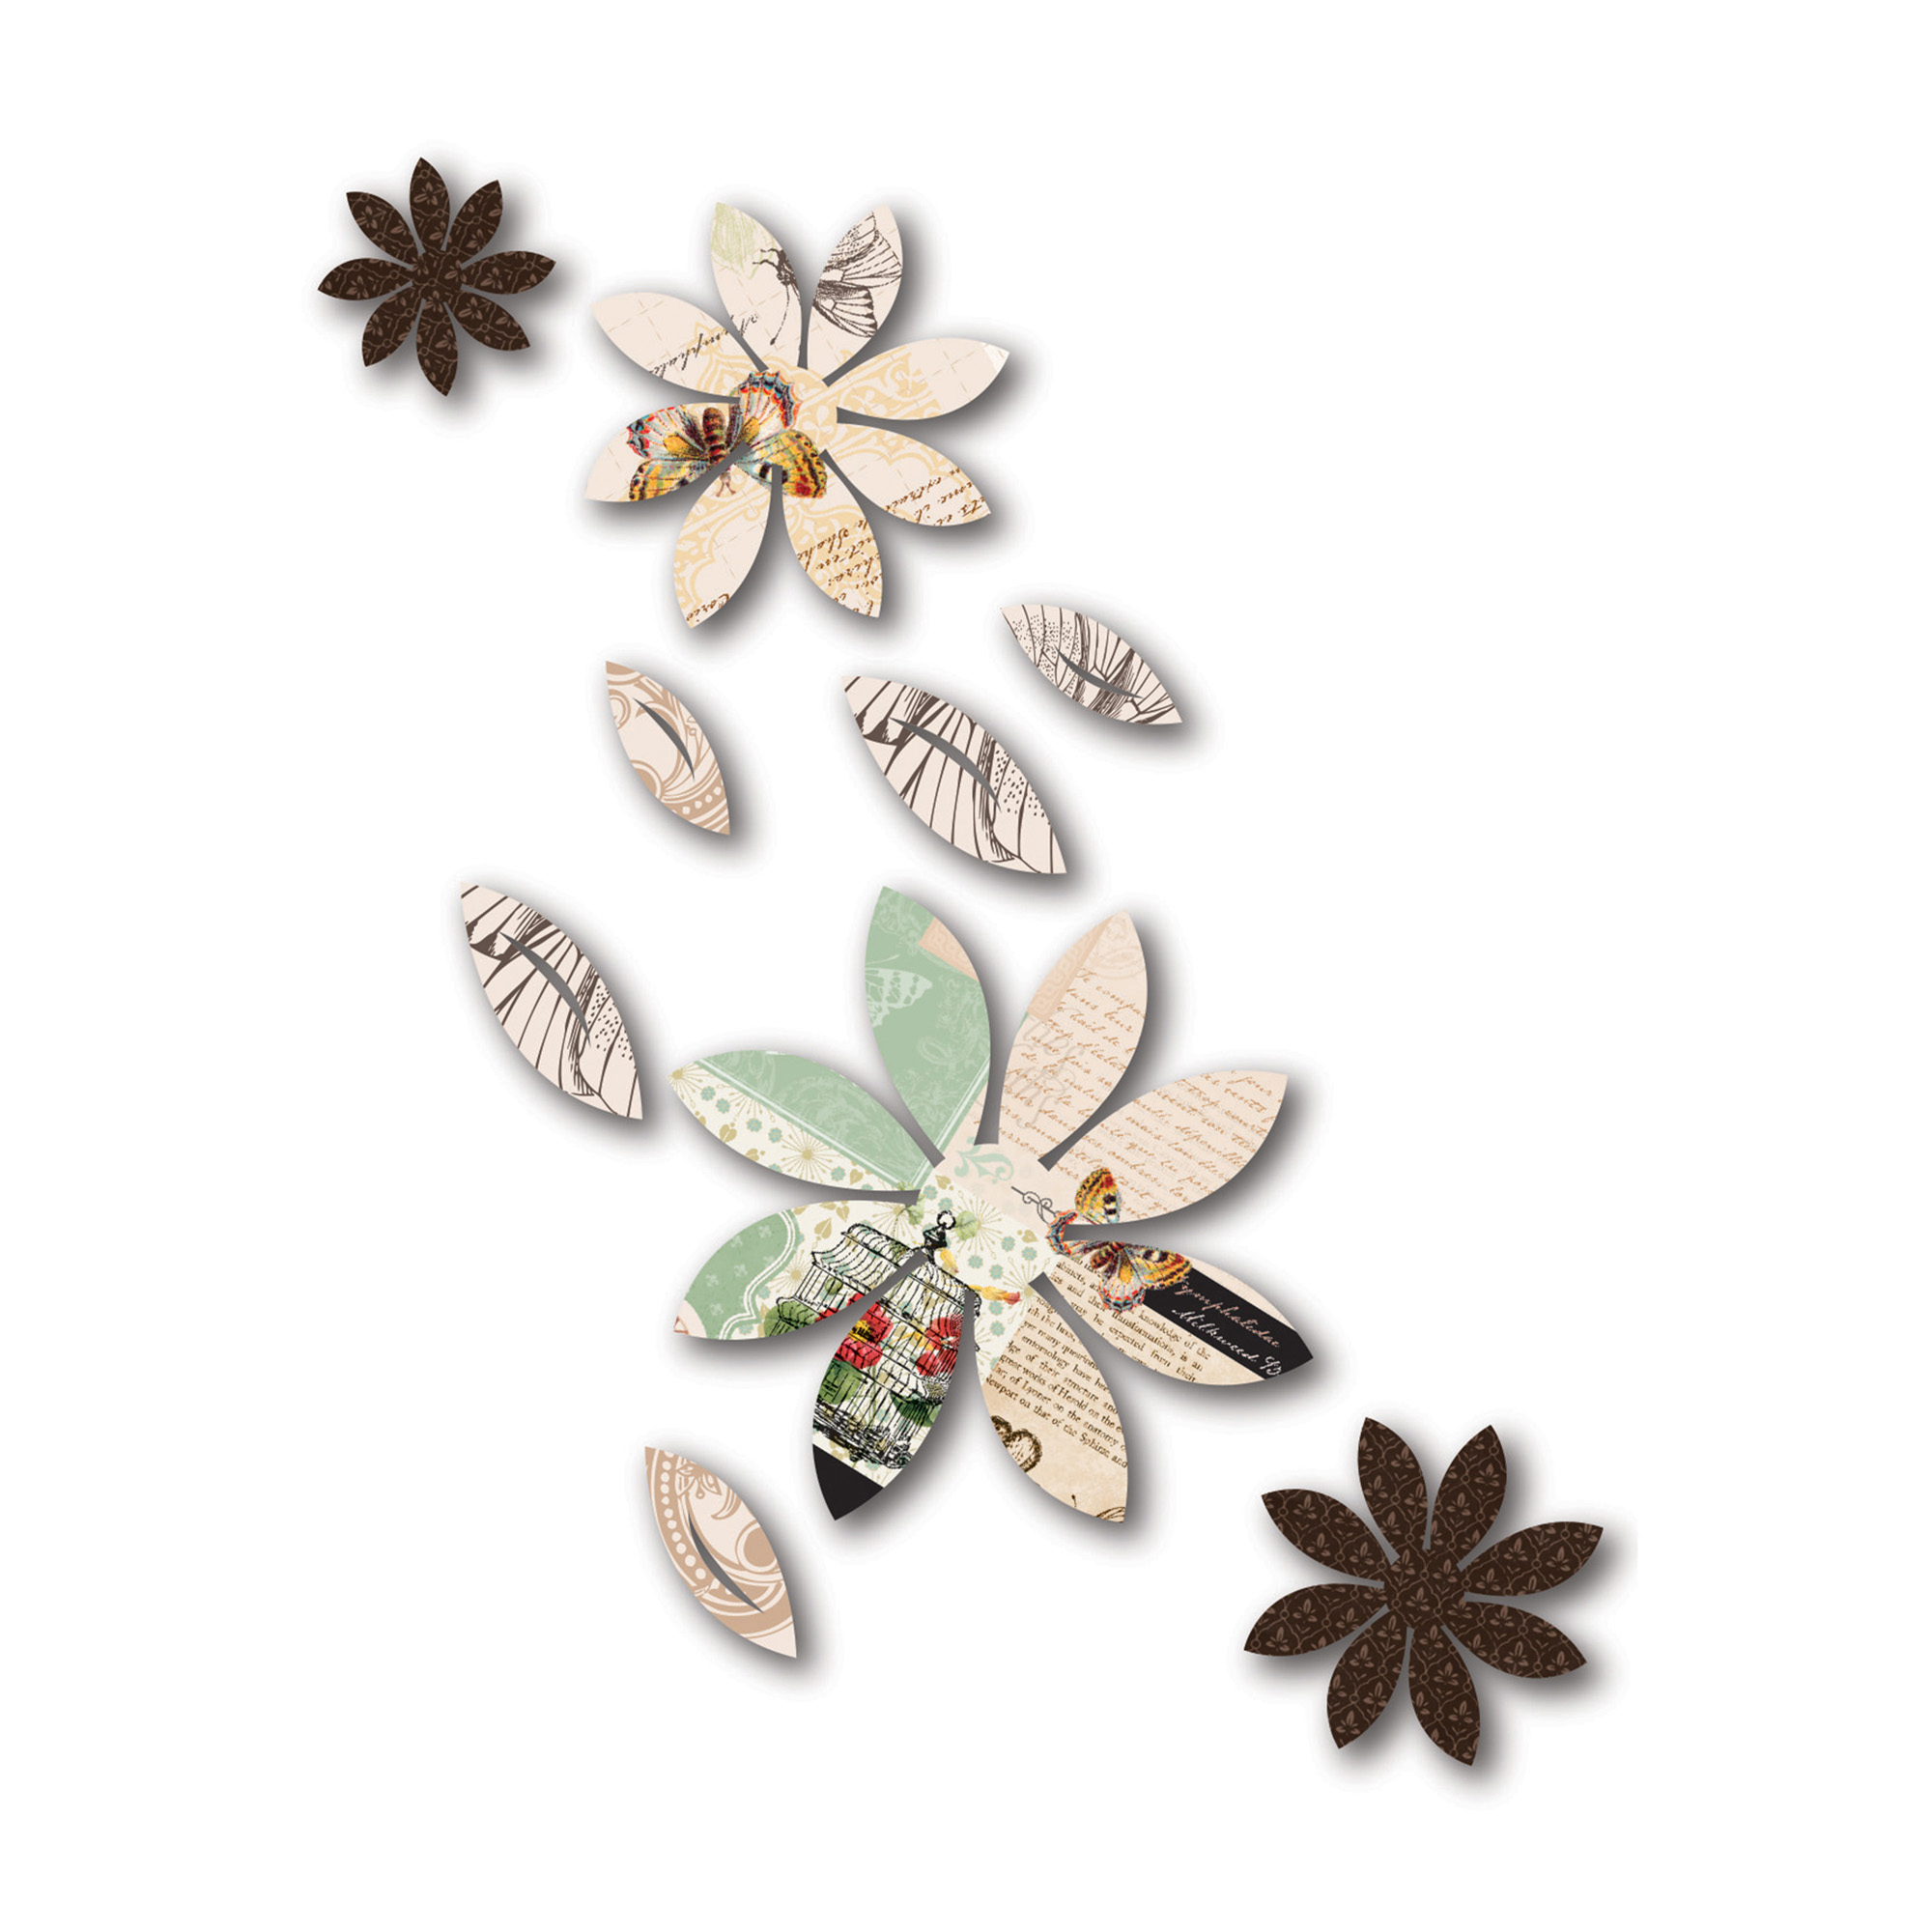 3D Wall Decor Brown Flowers With Mariposa Print, 9 Piece With Regard To Mariposa 9 Piece Wall Decor (View 4 of 30)